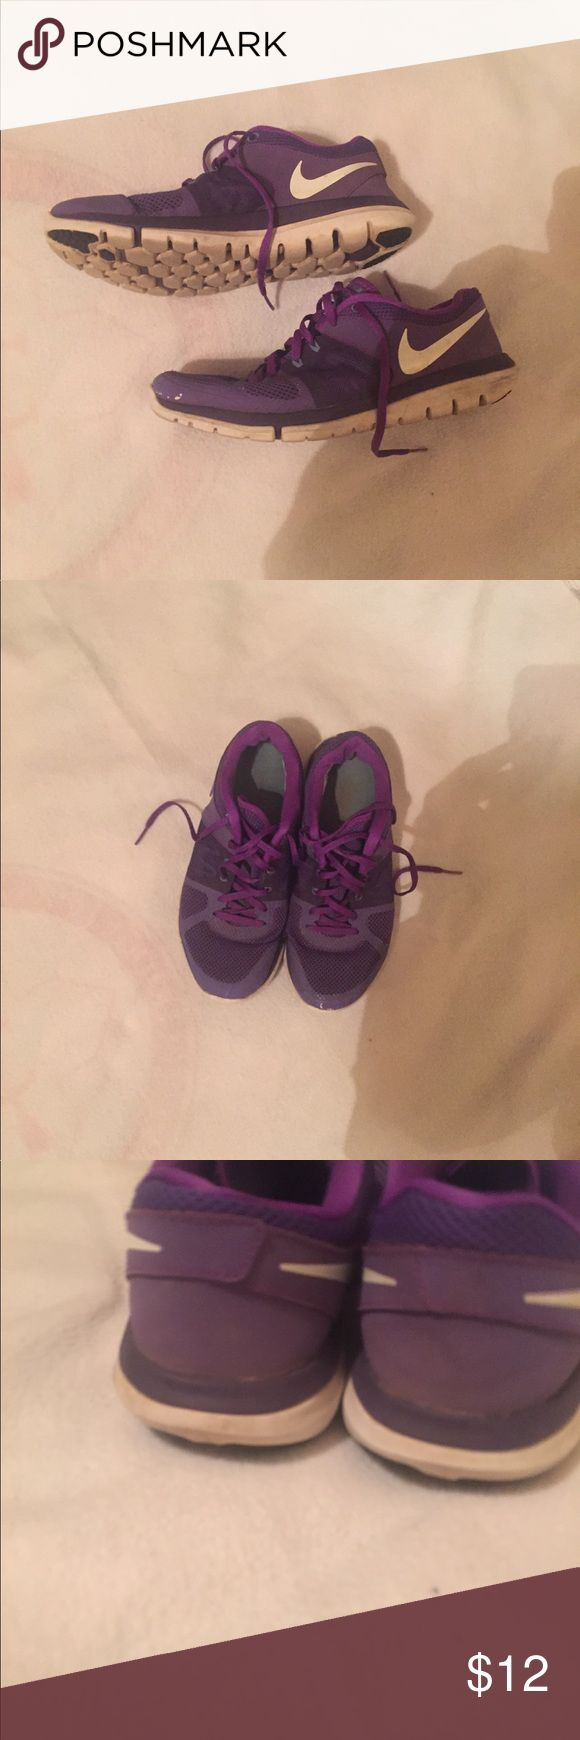 Purple Nike Tennis Shoes Been worn with some signs of wear. See pictures. Very comfortable with lots of wear left in them. Pretty purple color. Nike Shoes Sneakers